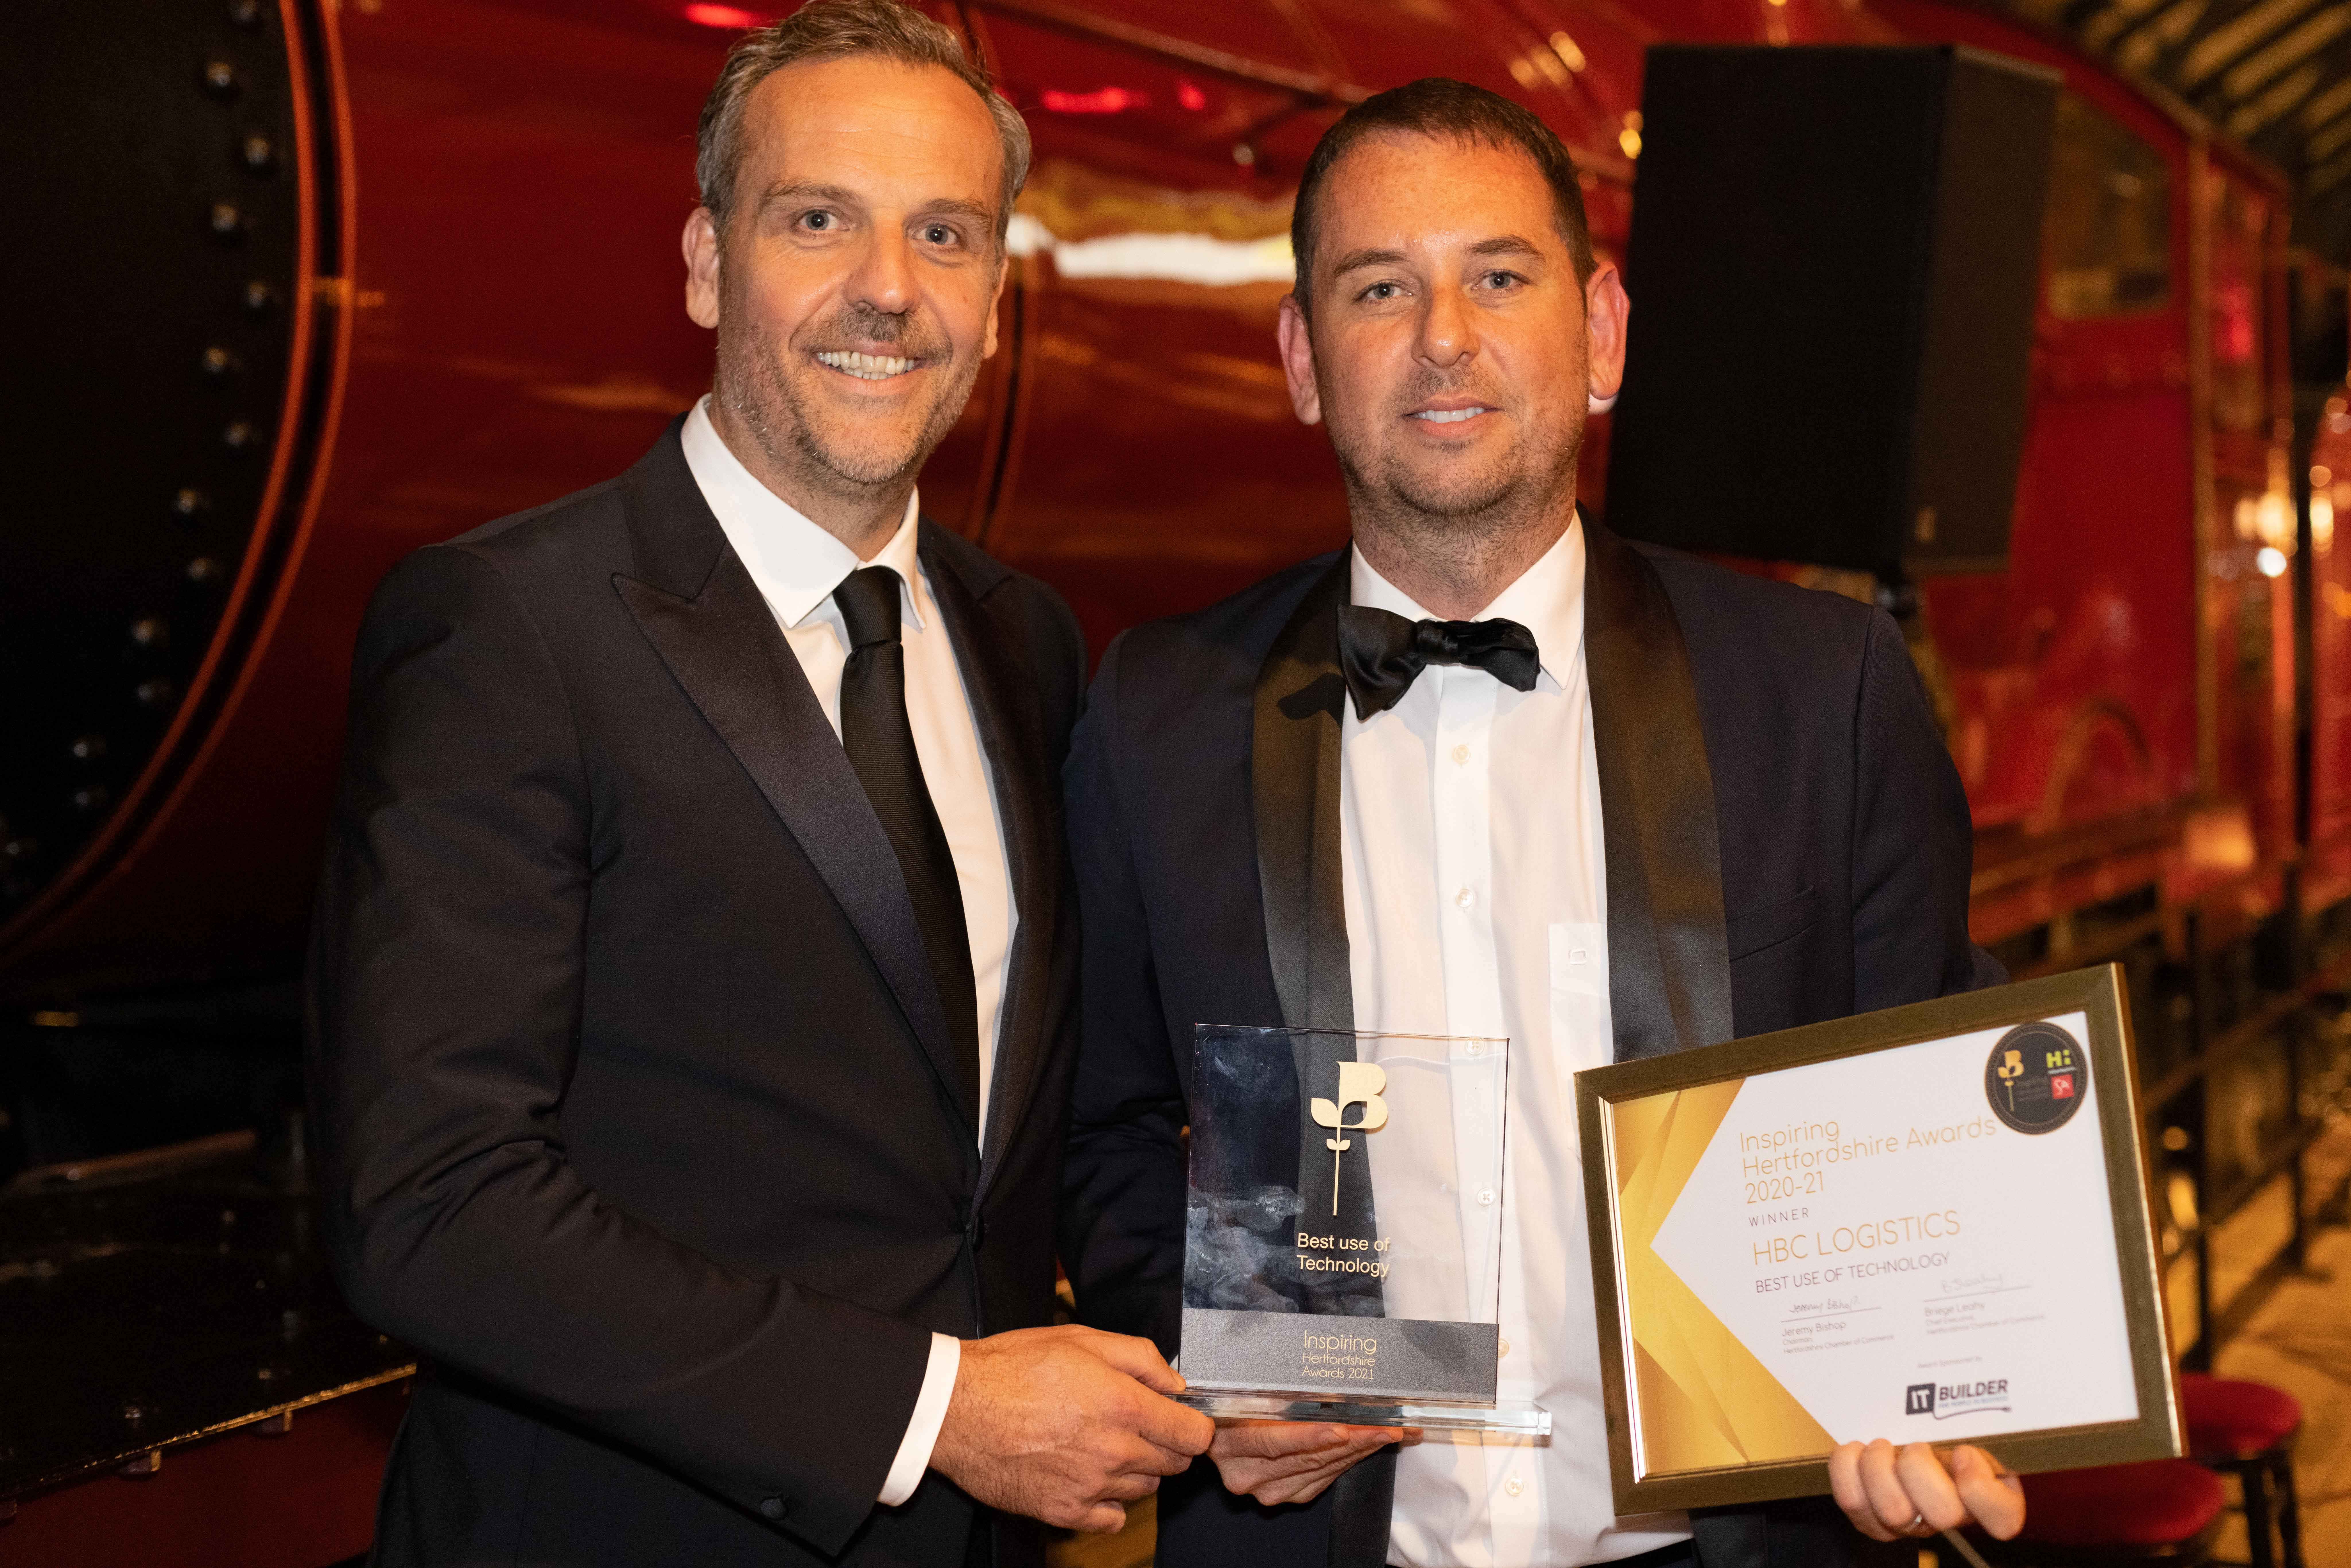 Hertfordshire logistics company scoops Best Use of Technology awards at magical Chamber of Commerce ceremony